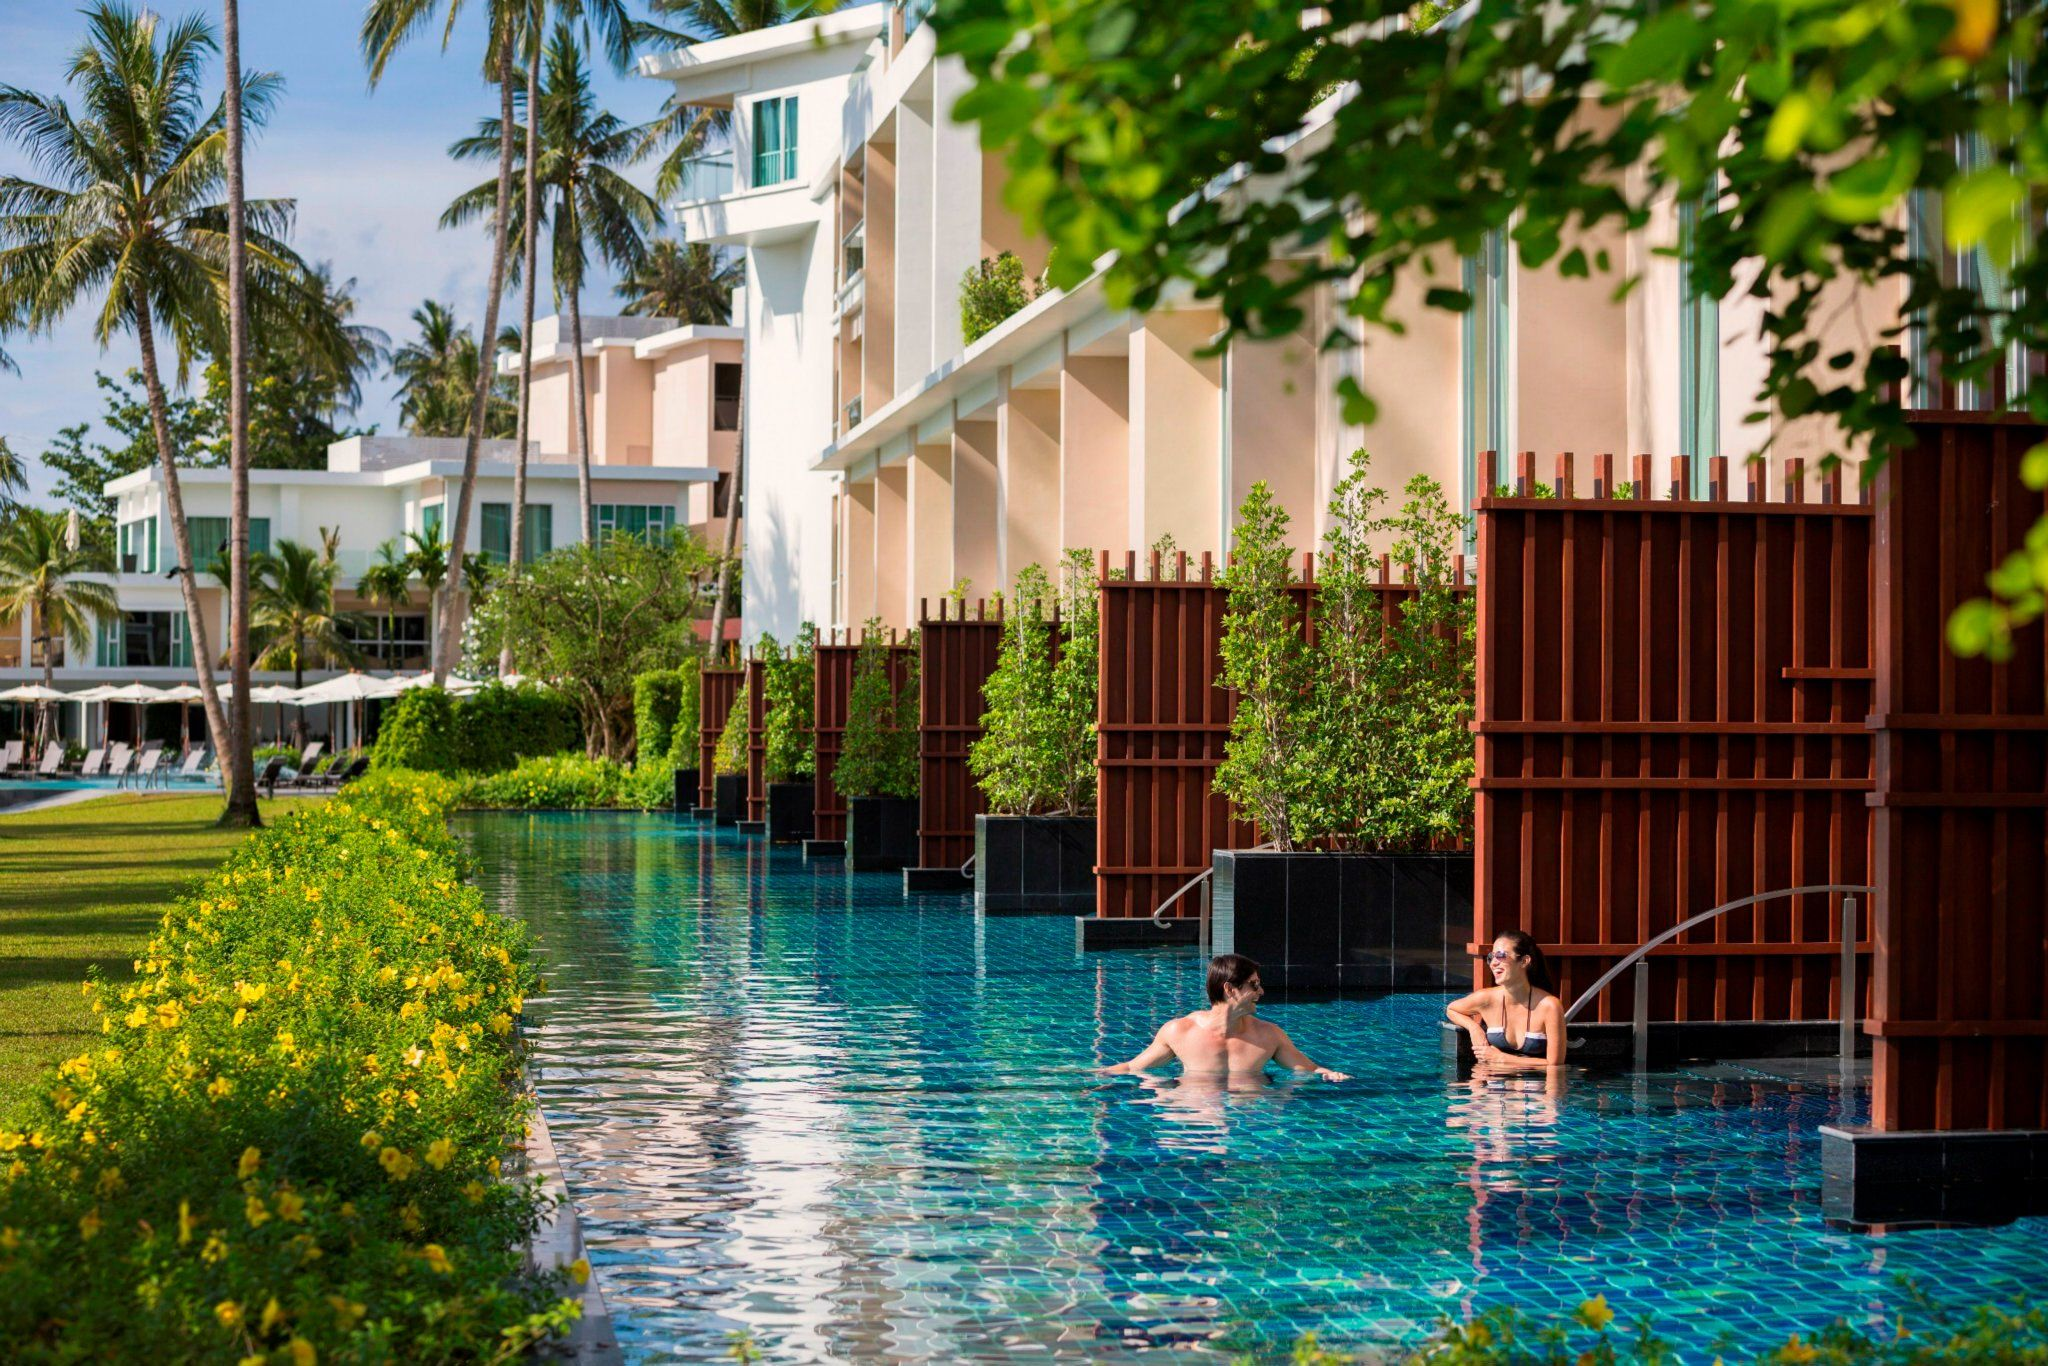 Private access pools at the Crowne Plaza